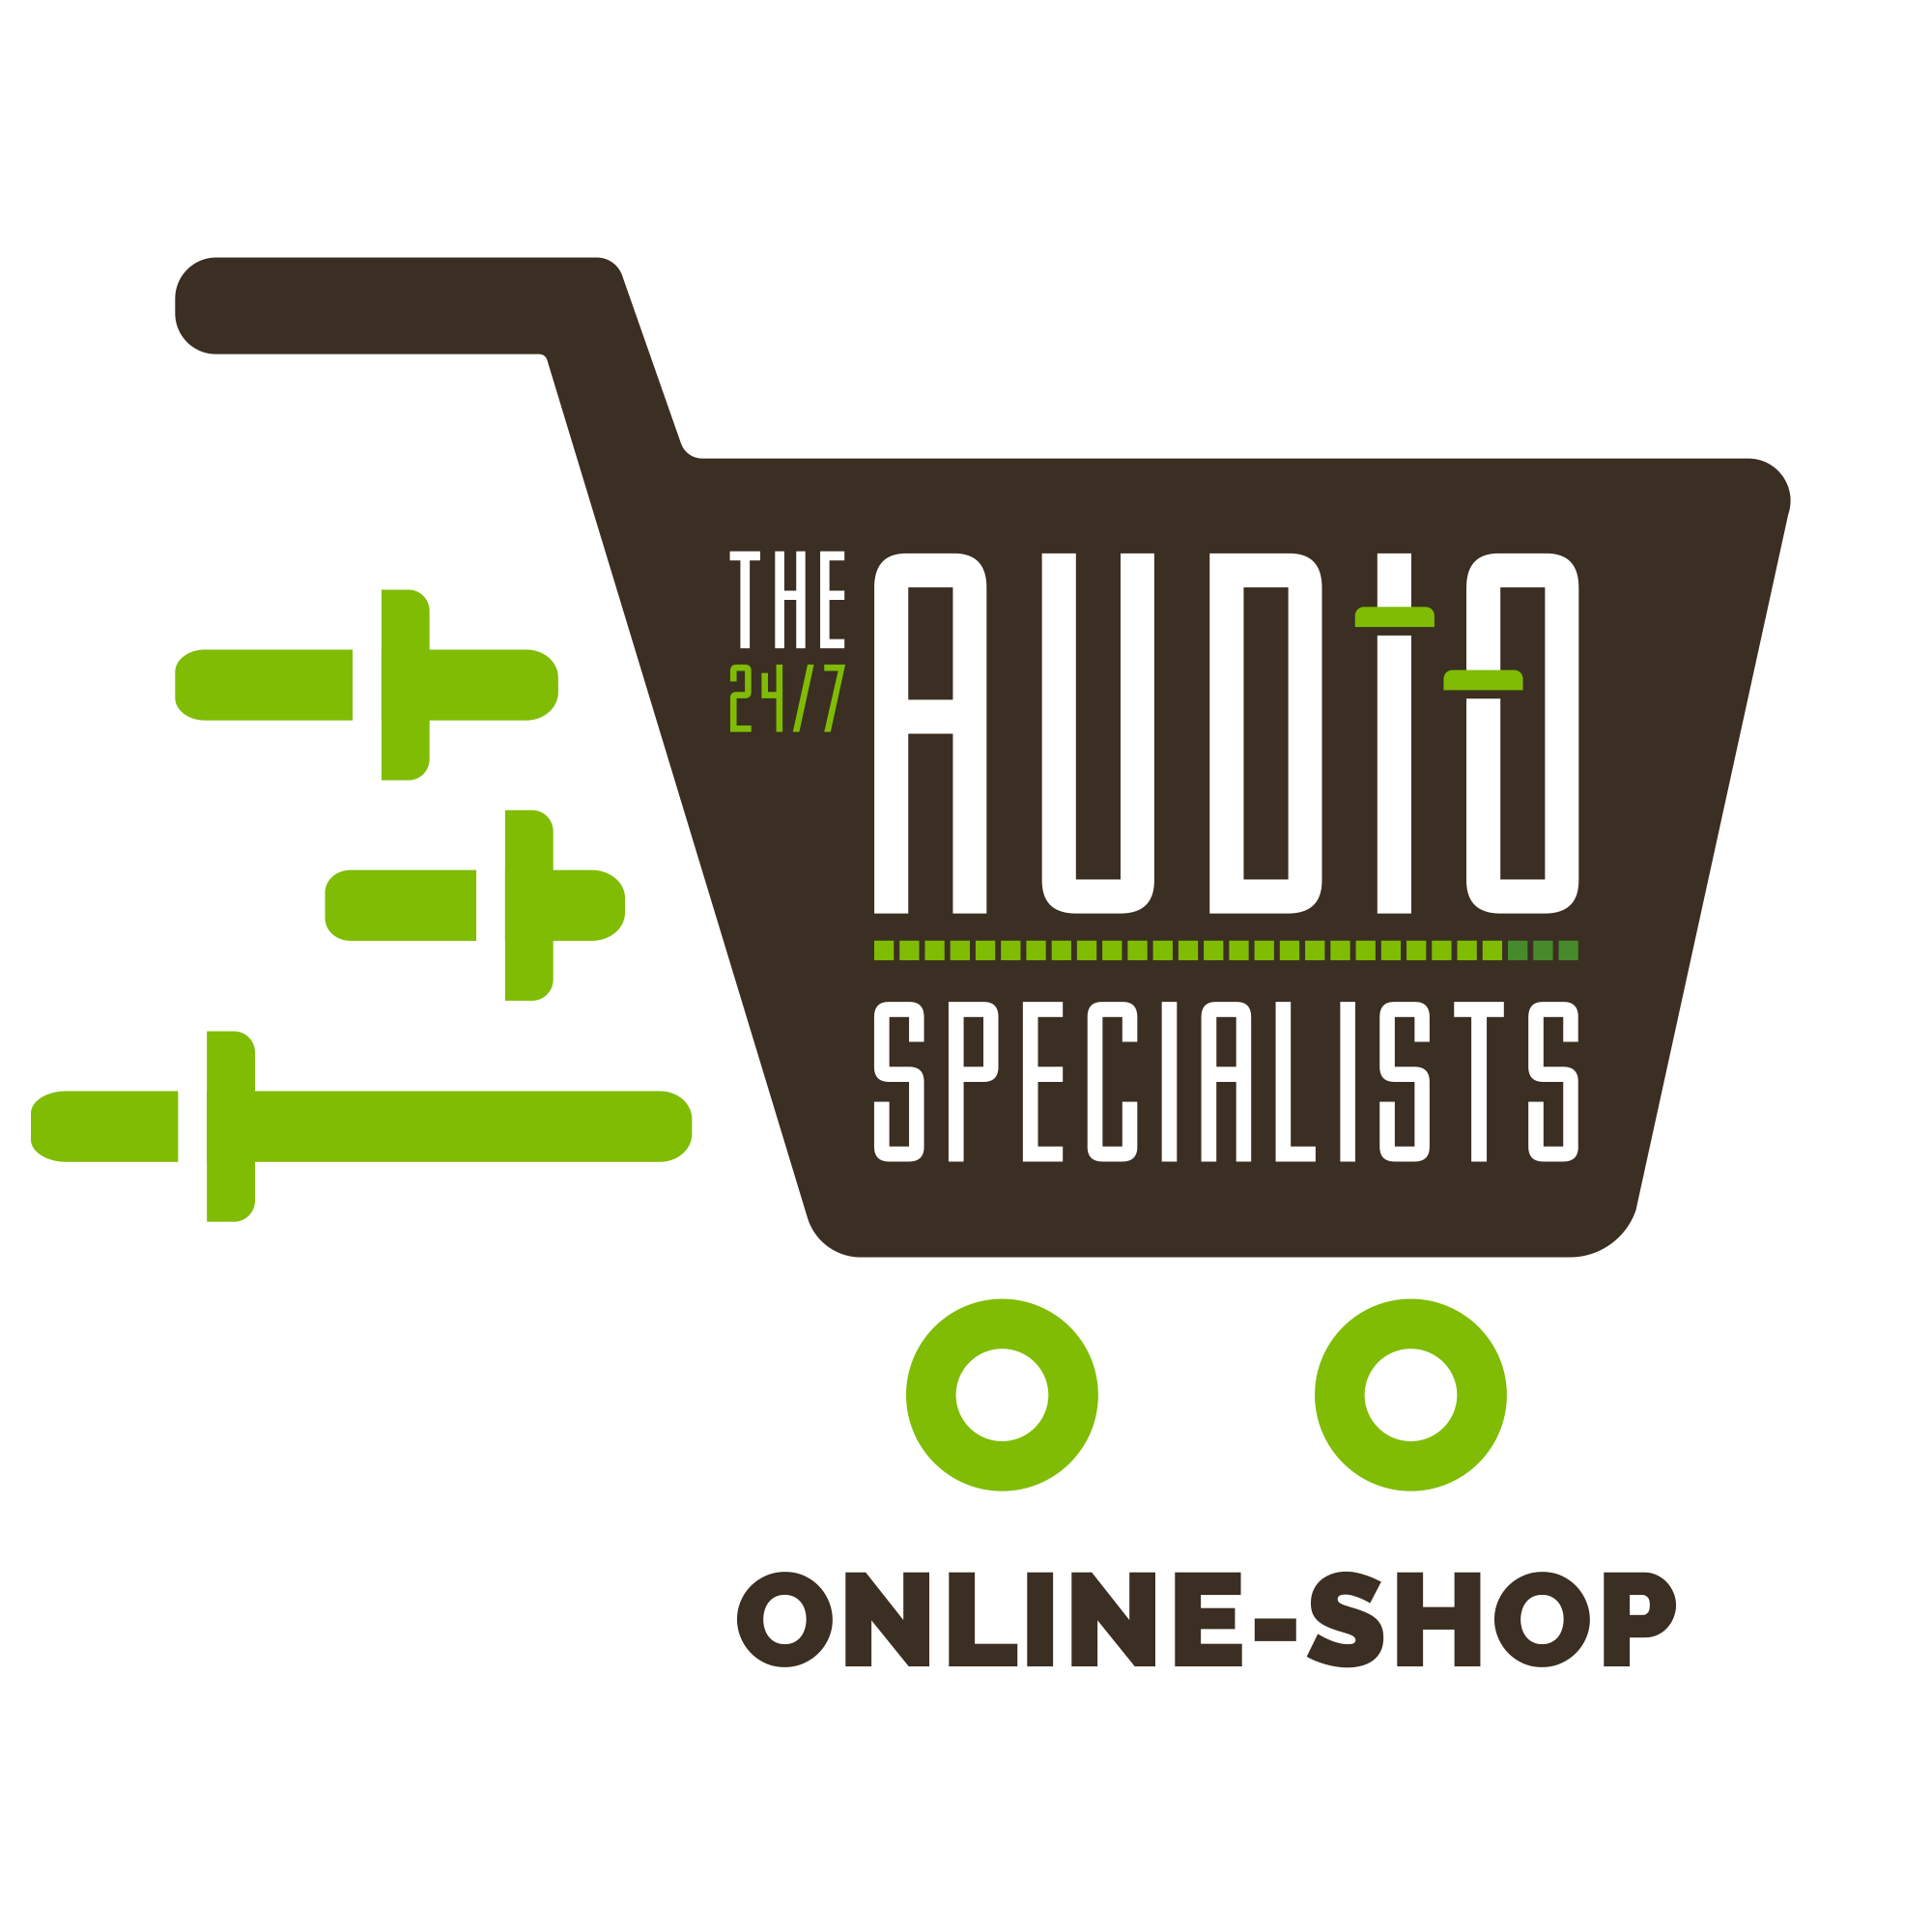 Pro audio quality, powered by us